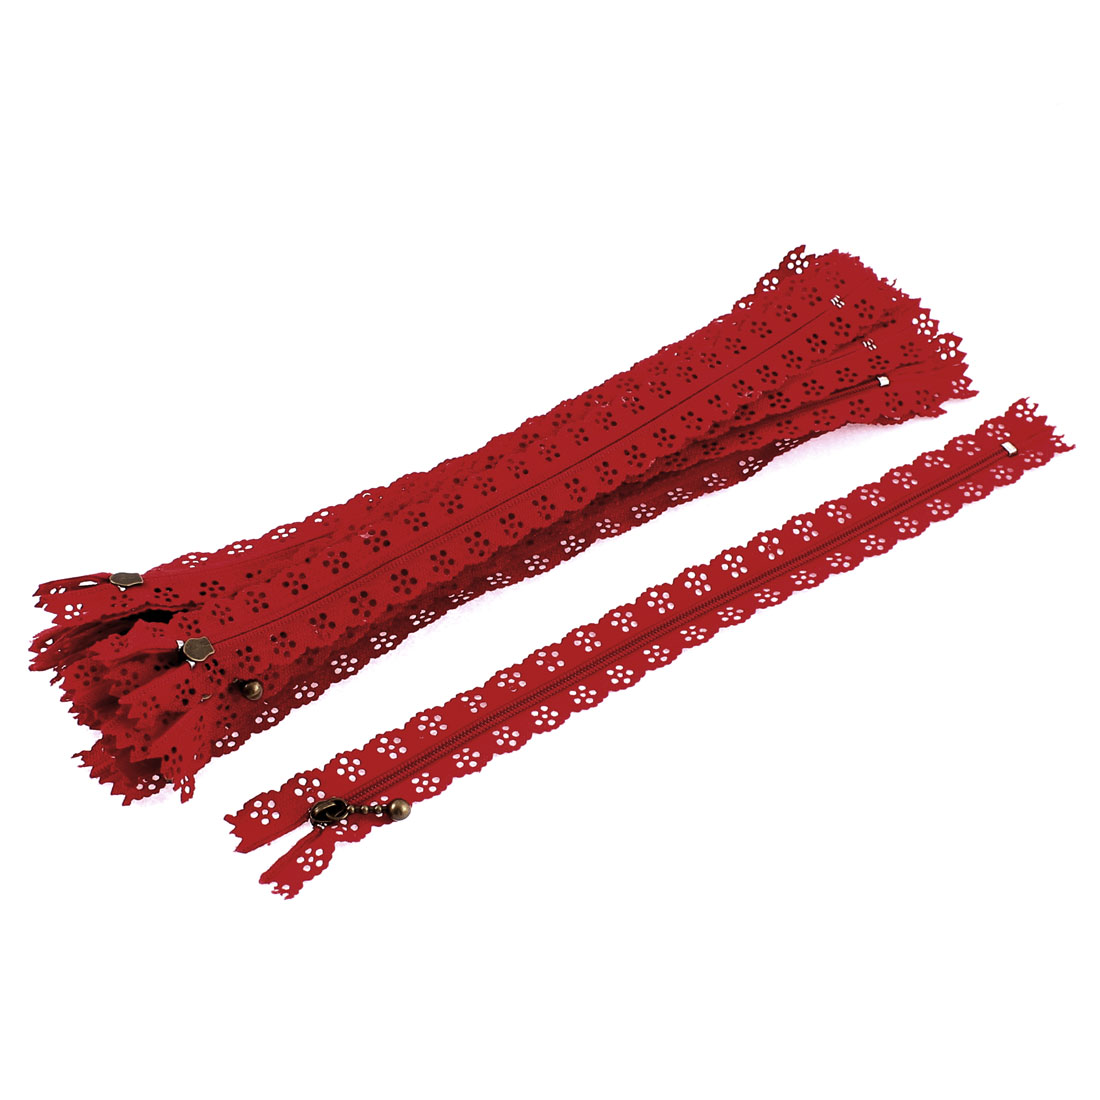 Red Flower Floral Lace Closed End Zip Zippers 20 Pcs